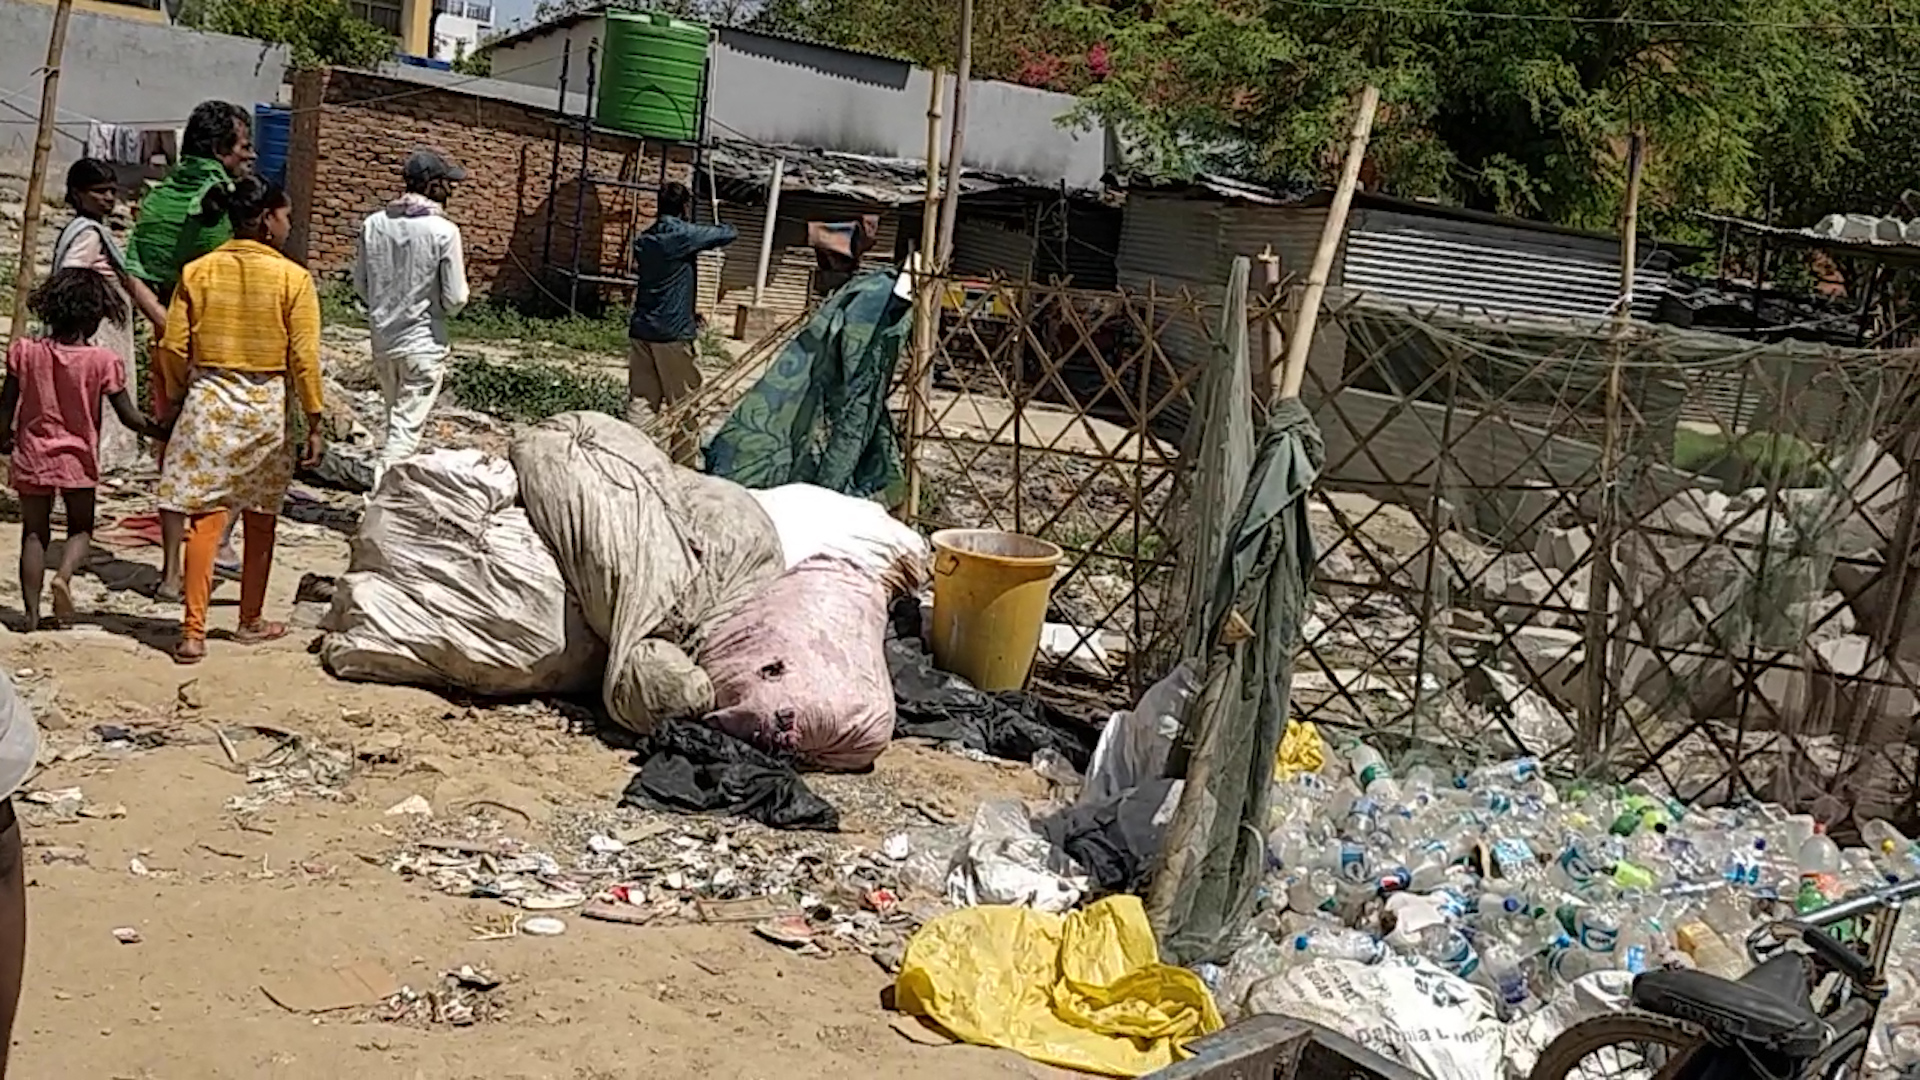 Trash has accumulated at the slum since the lockdown began | ThePrint